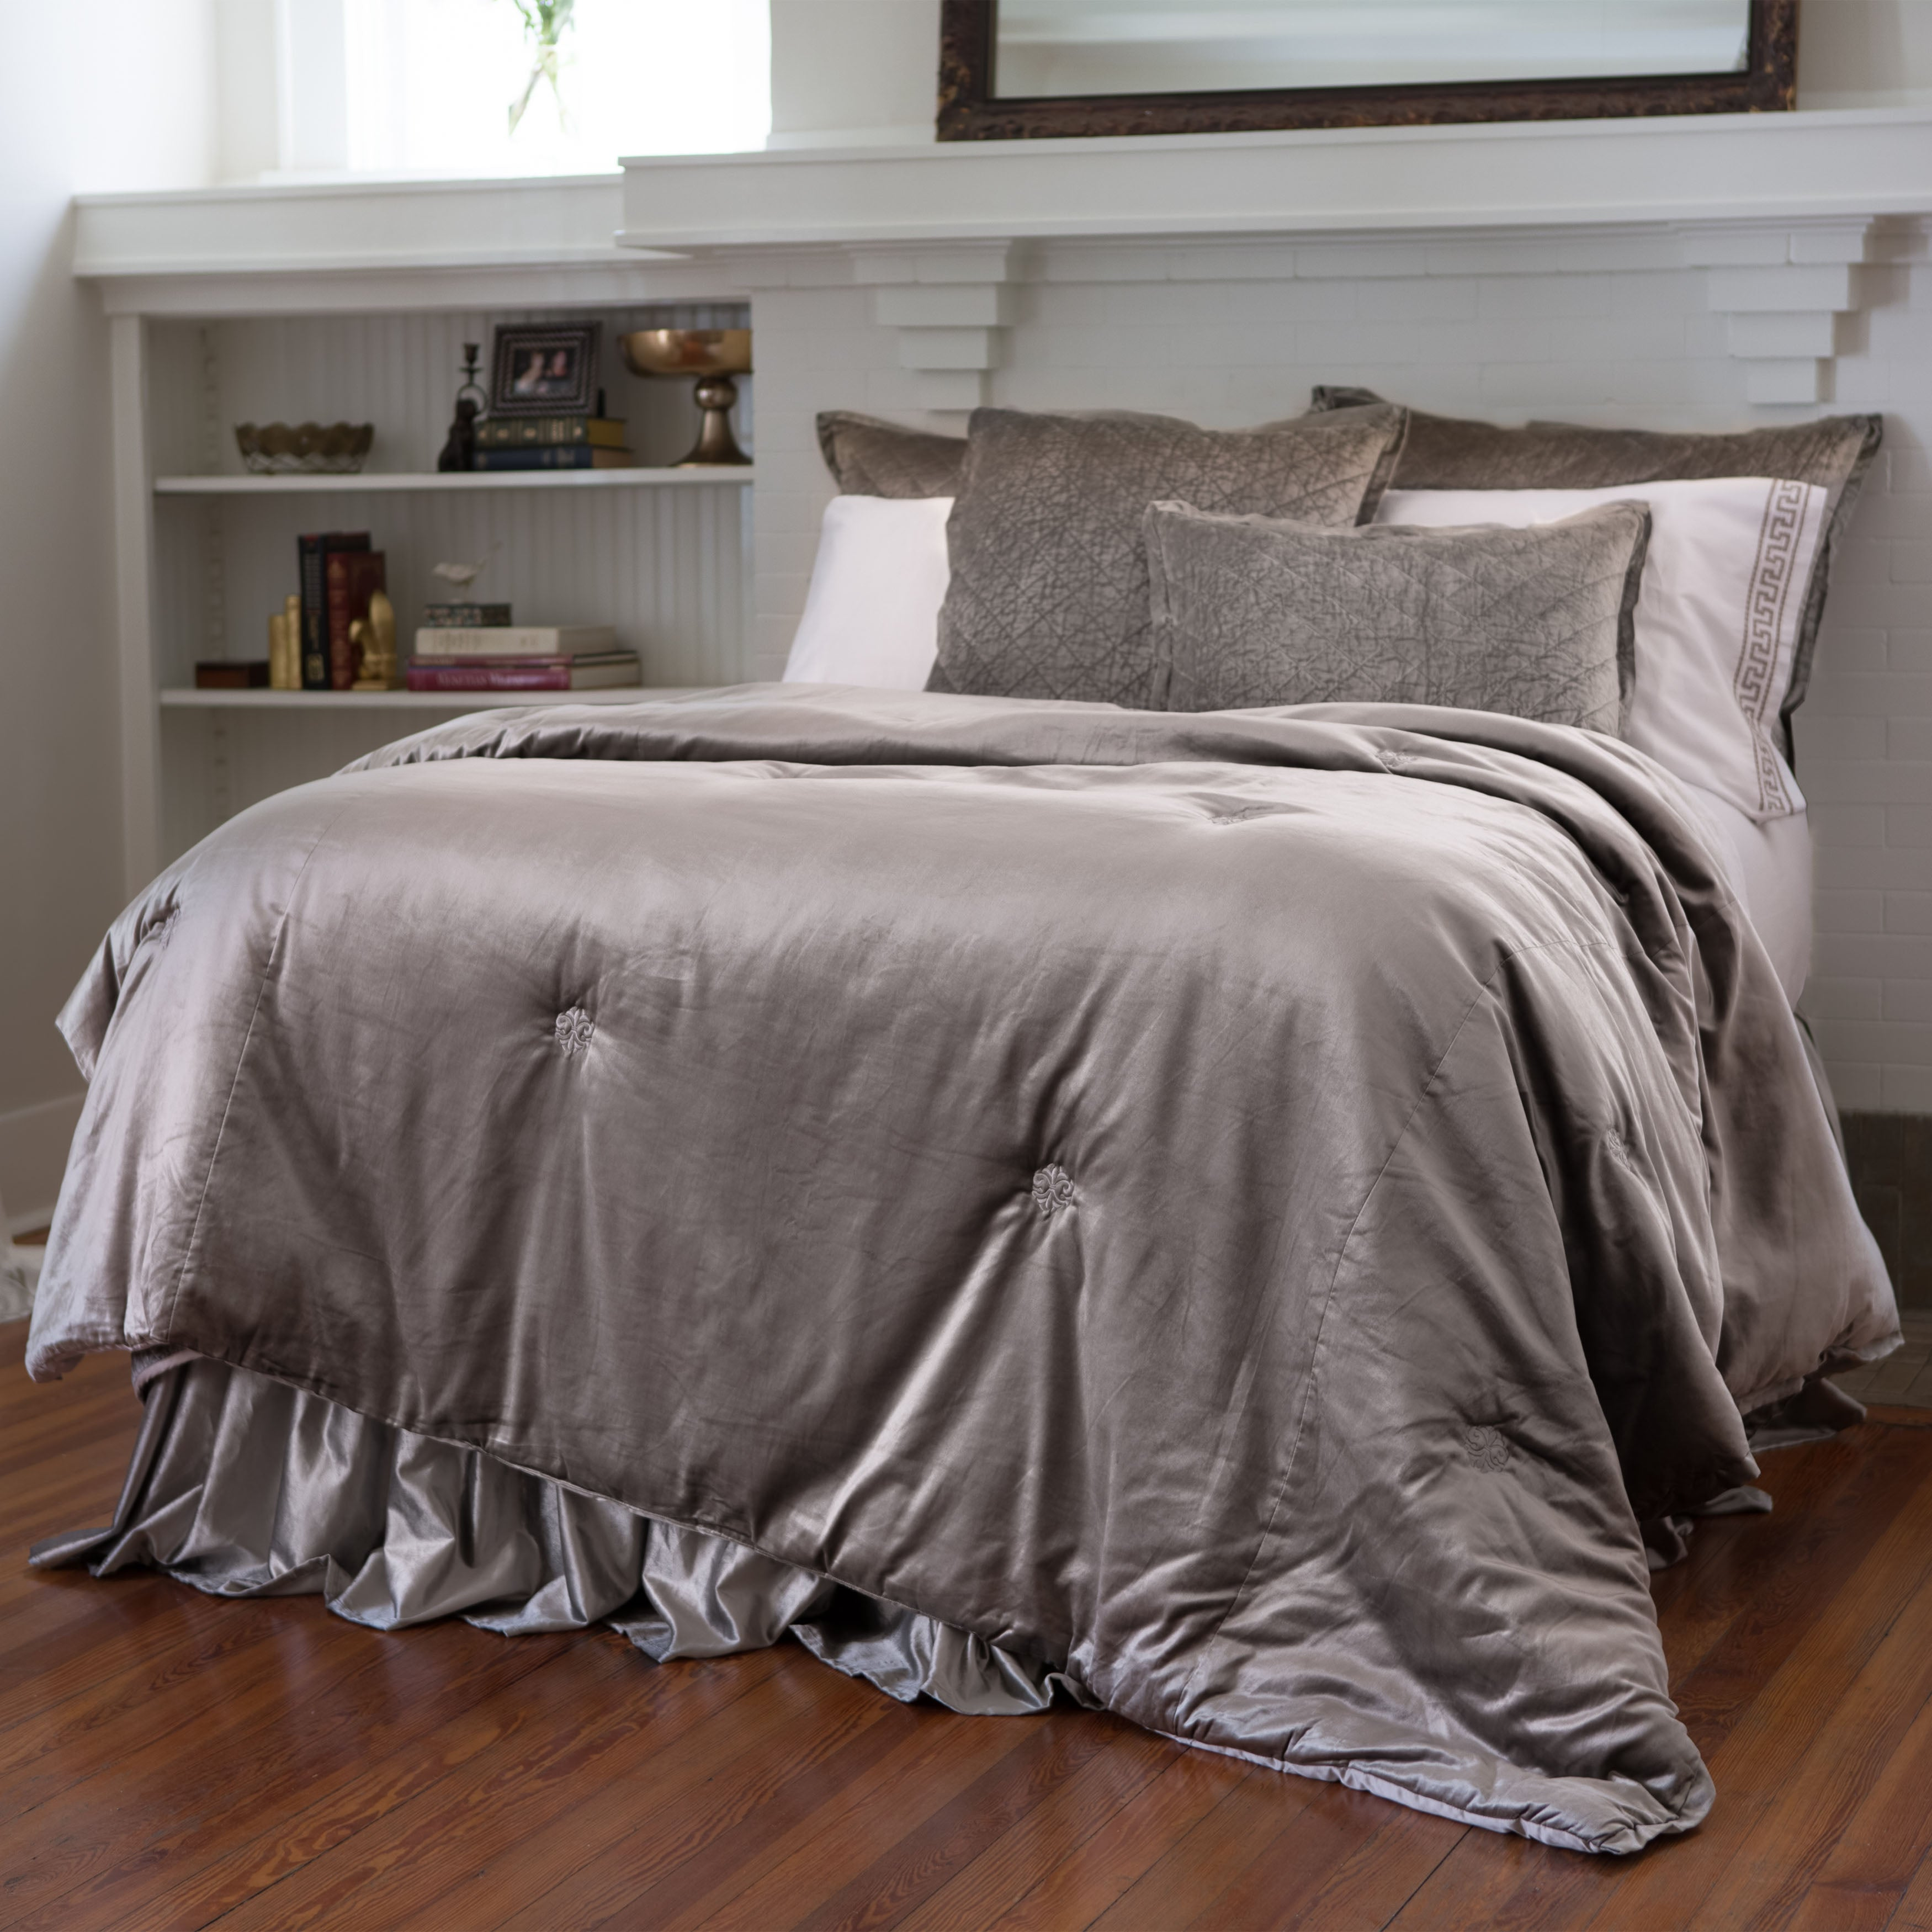 Chloe Fawn Velvet Padded Comfortlet [Luxury comforter Sets] [by Latest Bedding]